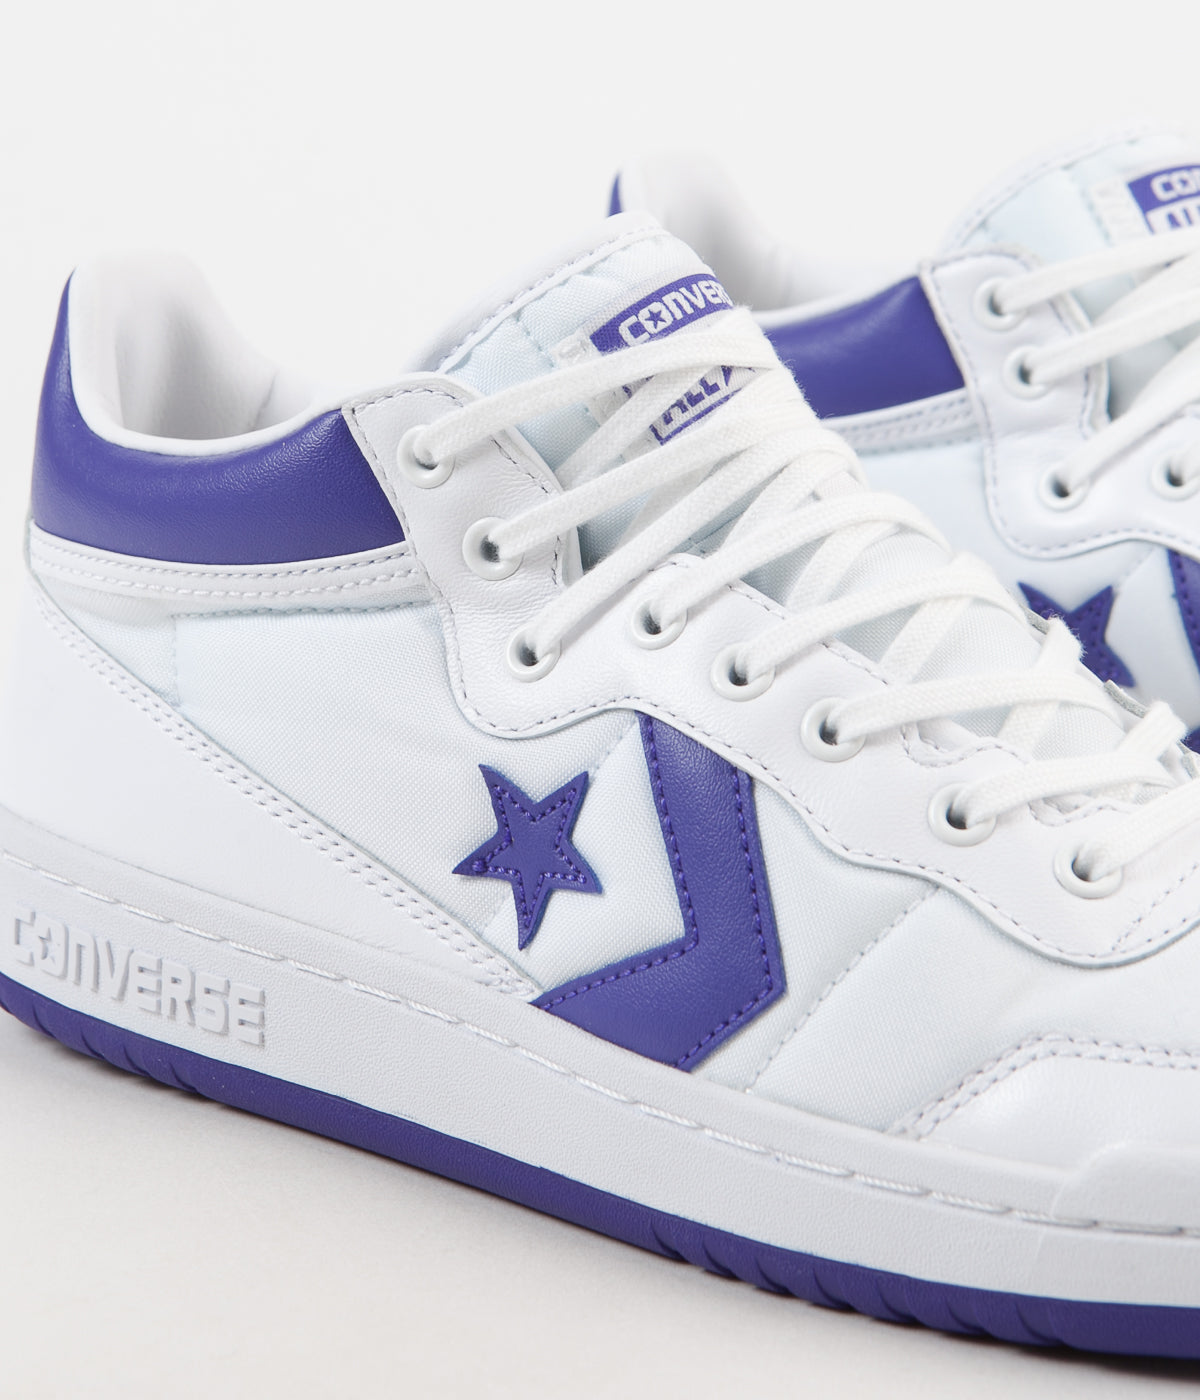 Converse Fastbreak Mid Shoes - White / Candy Grape